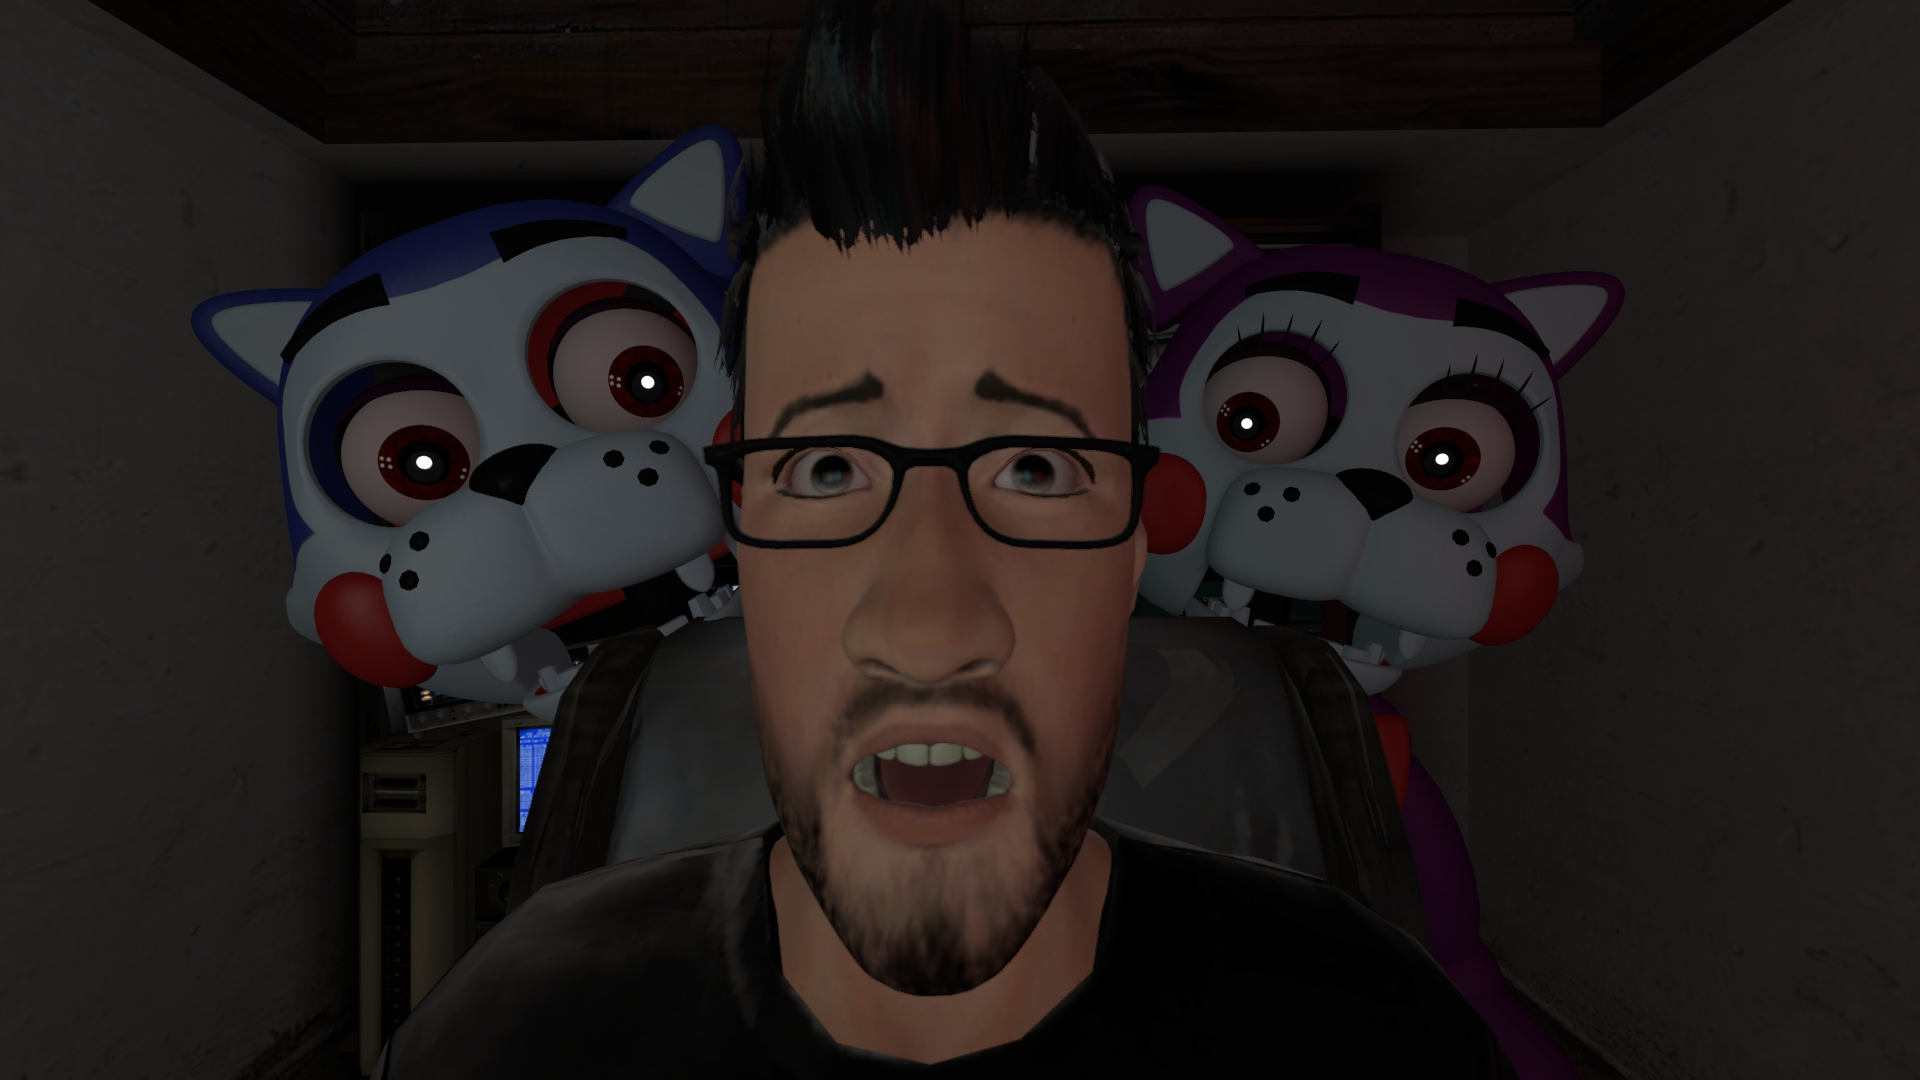 Sfm Markiplier Play S Five Nights At Candy S Five Nights At